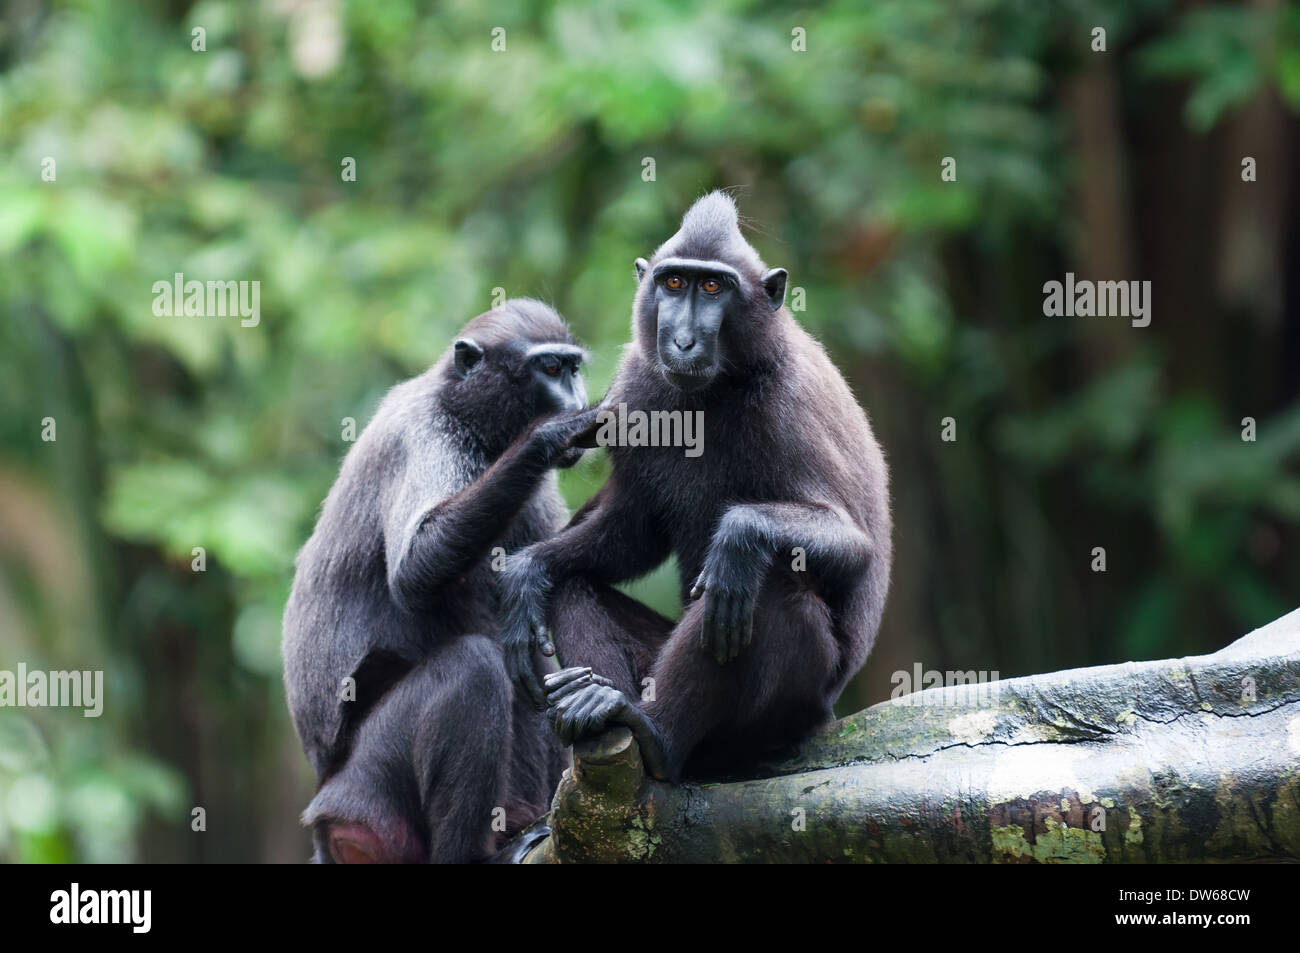 Sulawesi crested macaque (macaca niger) at the Singapore Zoo. - Stock Image